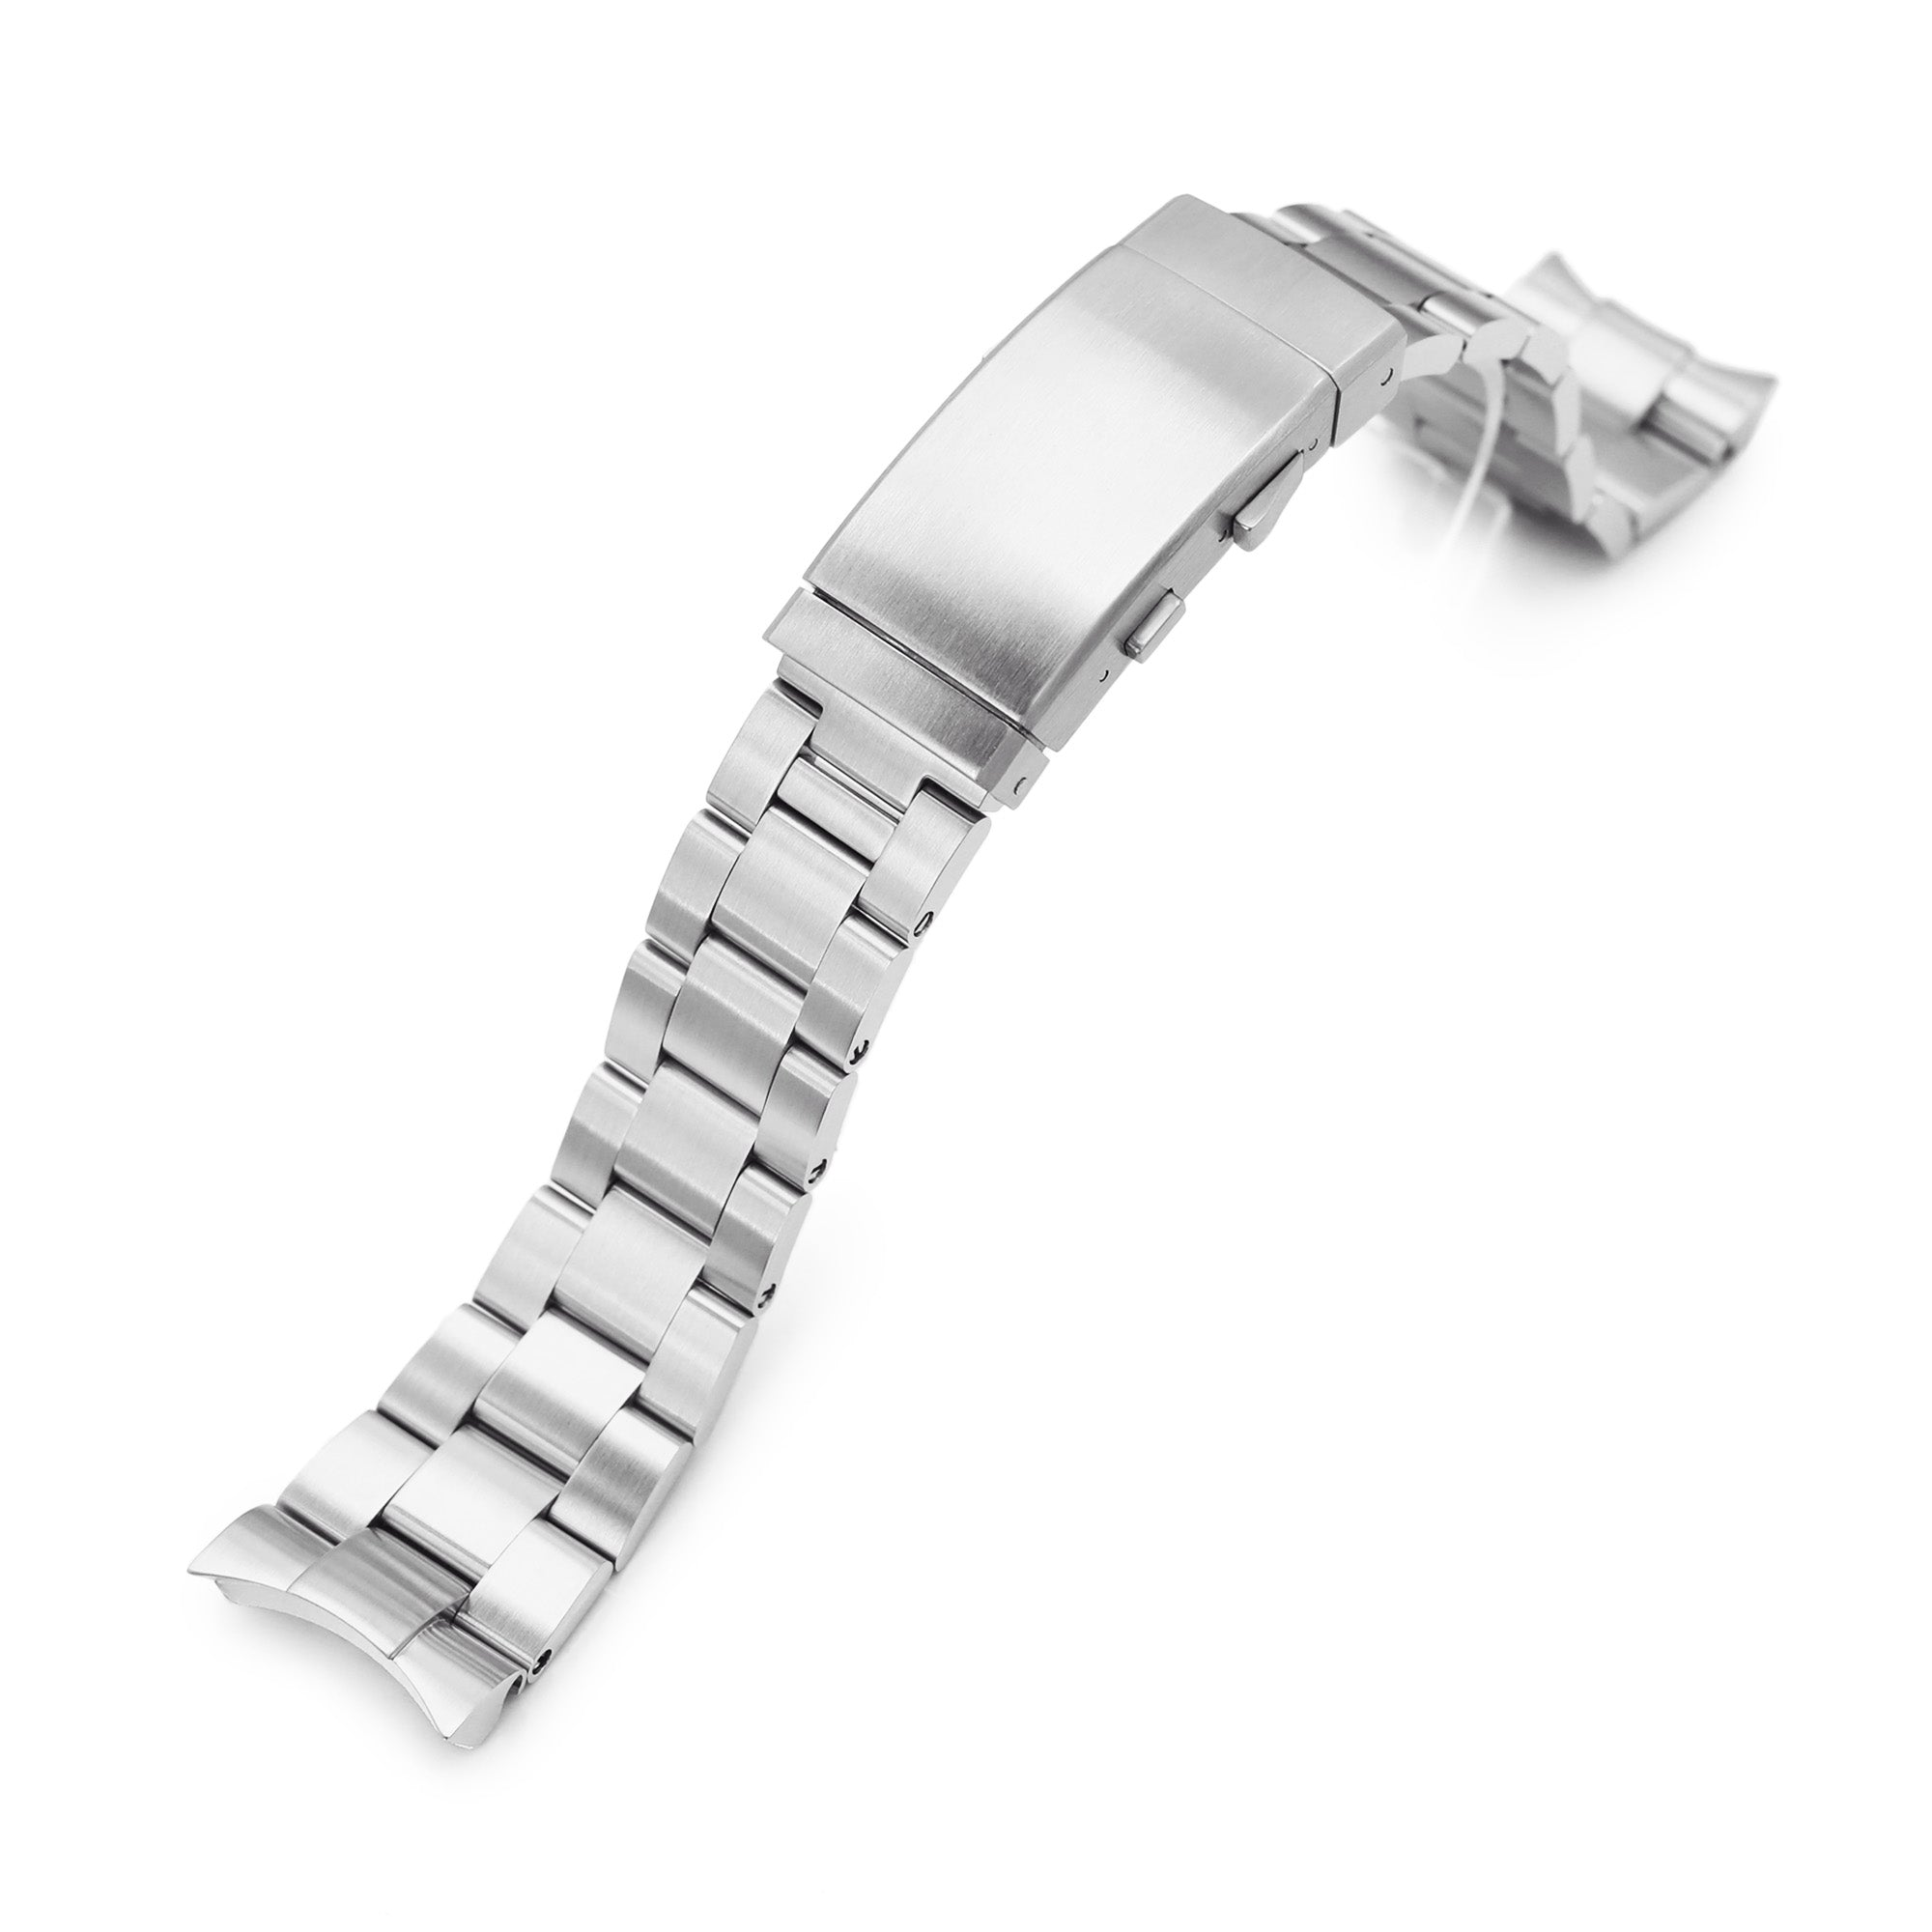 22mm Super-O Boyer 316L Stainless Steel Watch Band for Orient Mako II & Ray II, Wetsuit Ratchet Buckle Strapcode Watch Bands